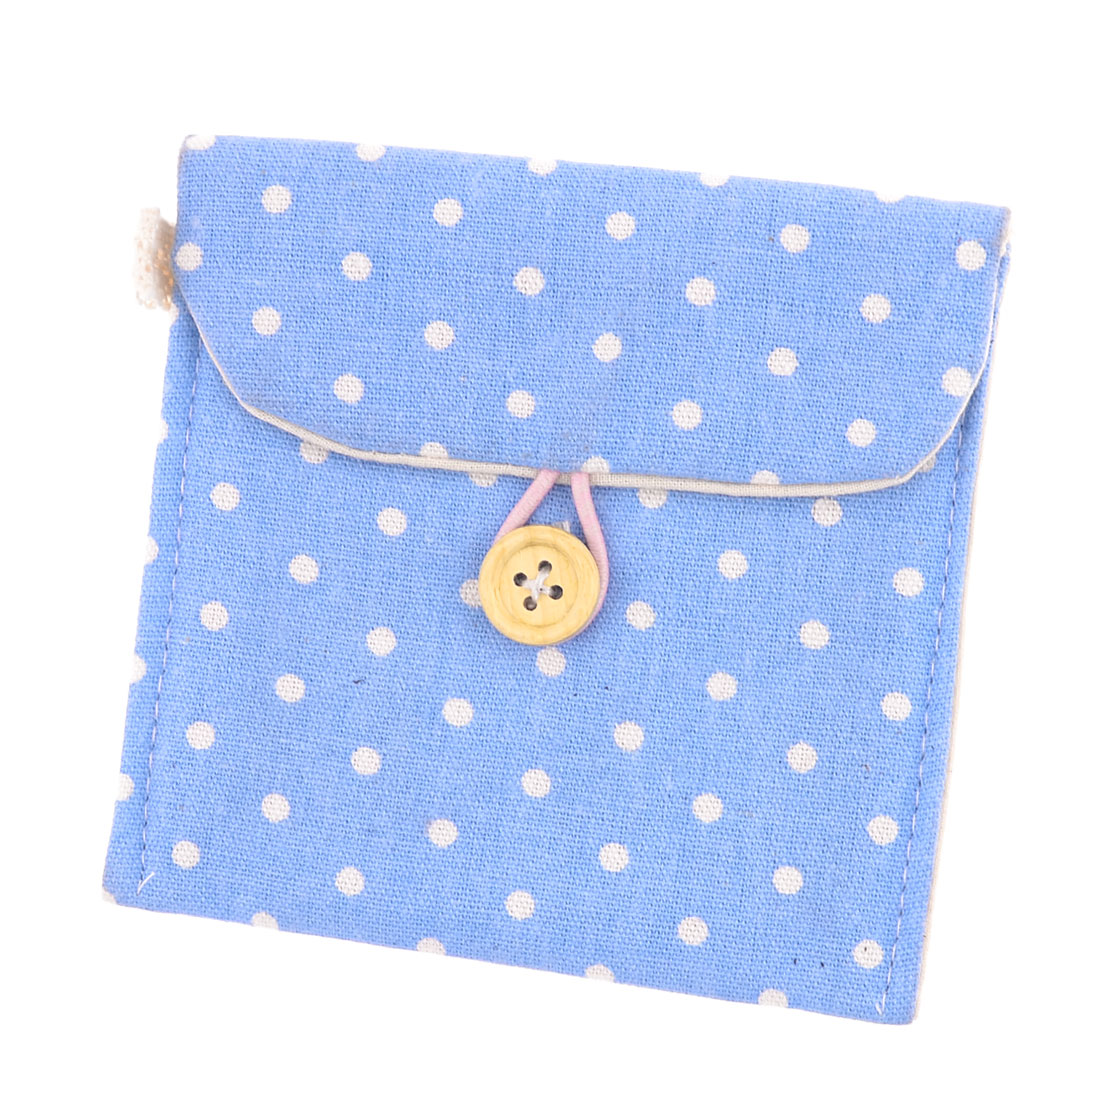 Girl Cotton Blends Polka Dots Sanitary Pad Holder Button Bag Case Blue